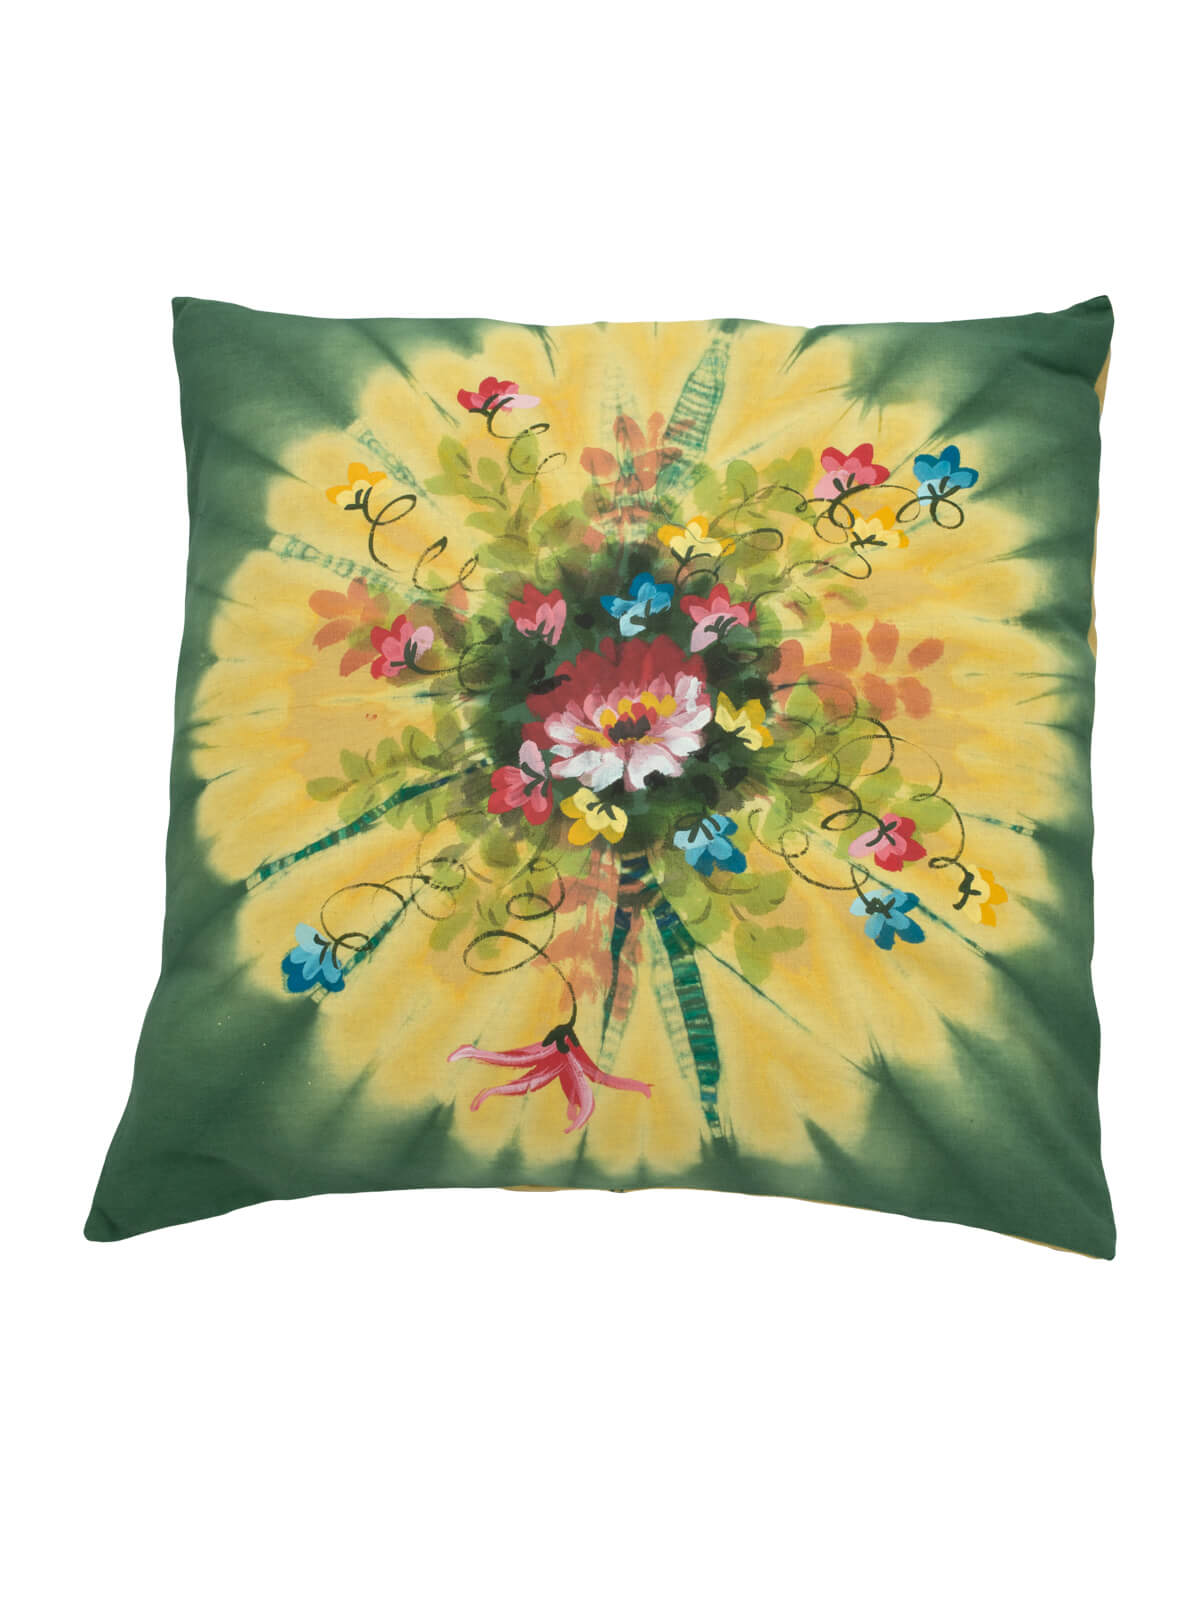 Handmade Wax Dyed Cotton Cushion Cover